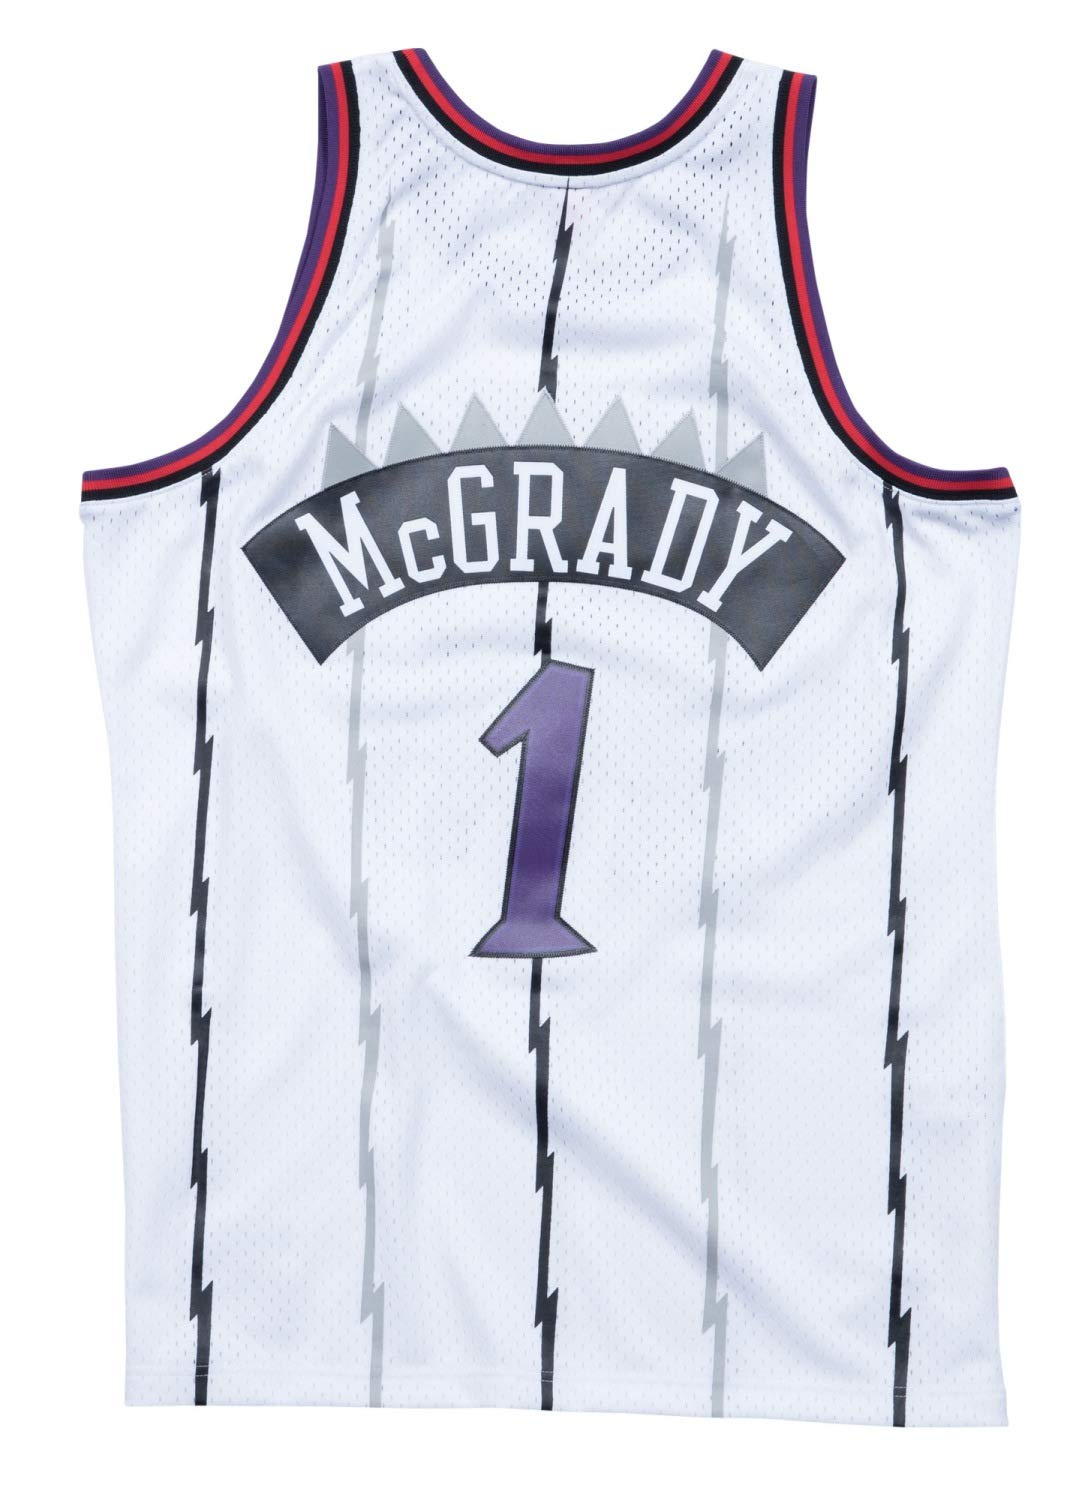 a8e67c3ae99 Amazon.com   Mitchell   Ness Tracy McGrady Toronto Raptors NBA Swingman  98-99 Jersey - White   Clothing